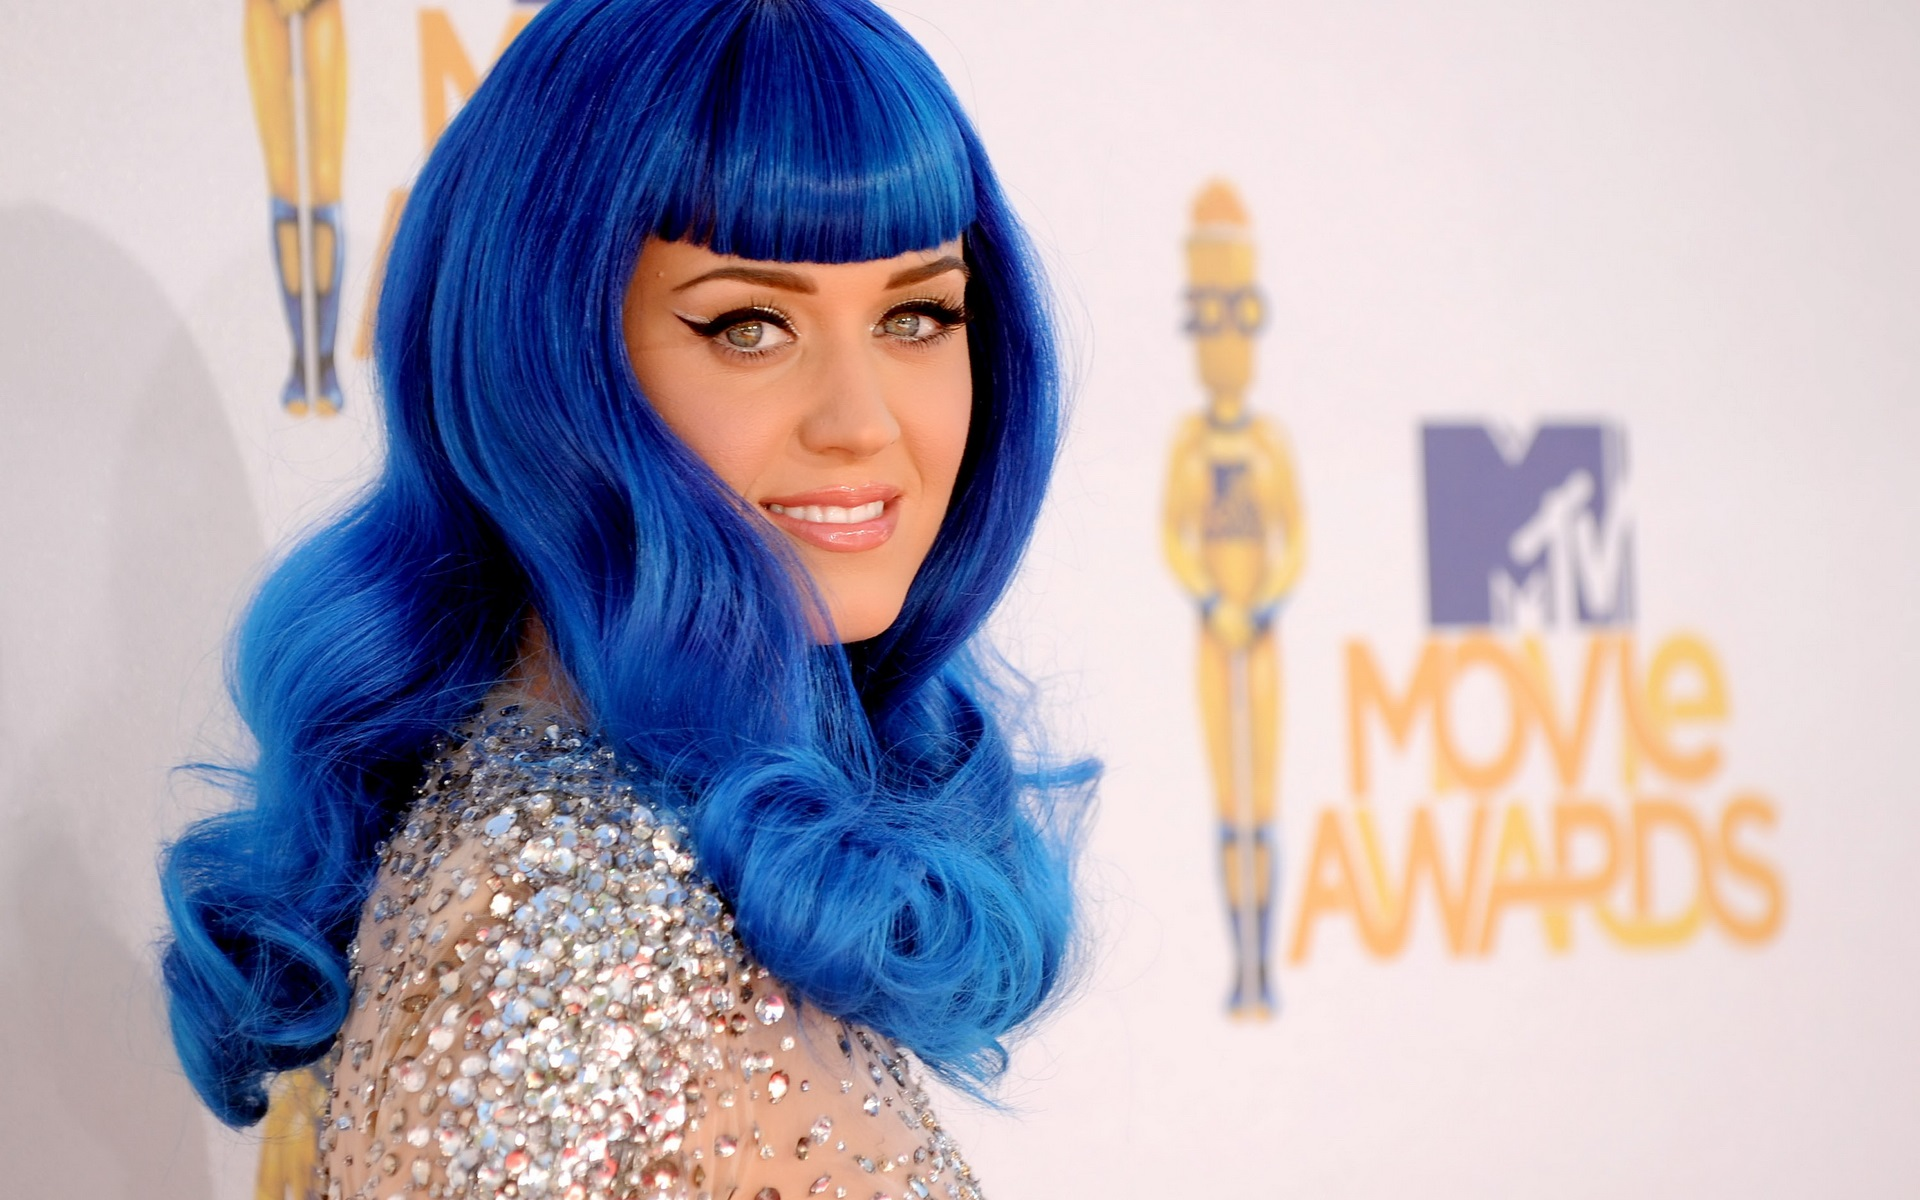 Katy Perry Wallpaper 35